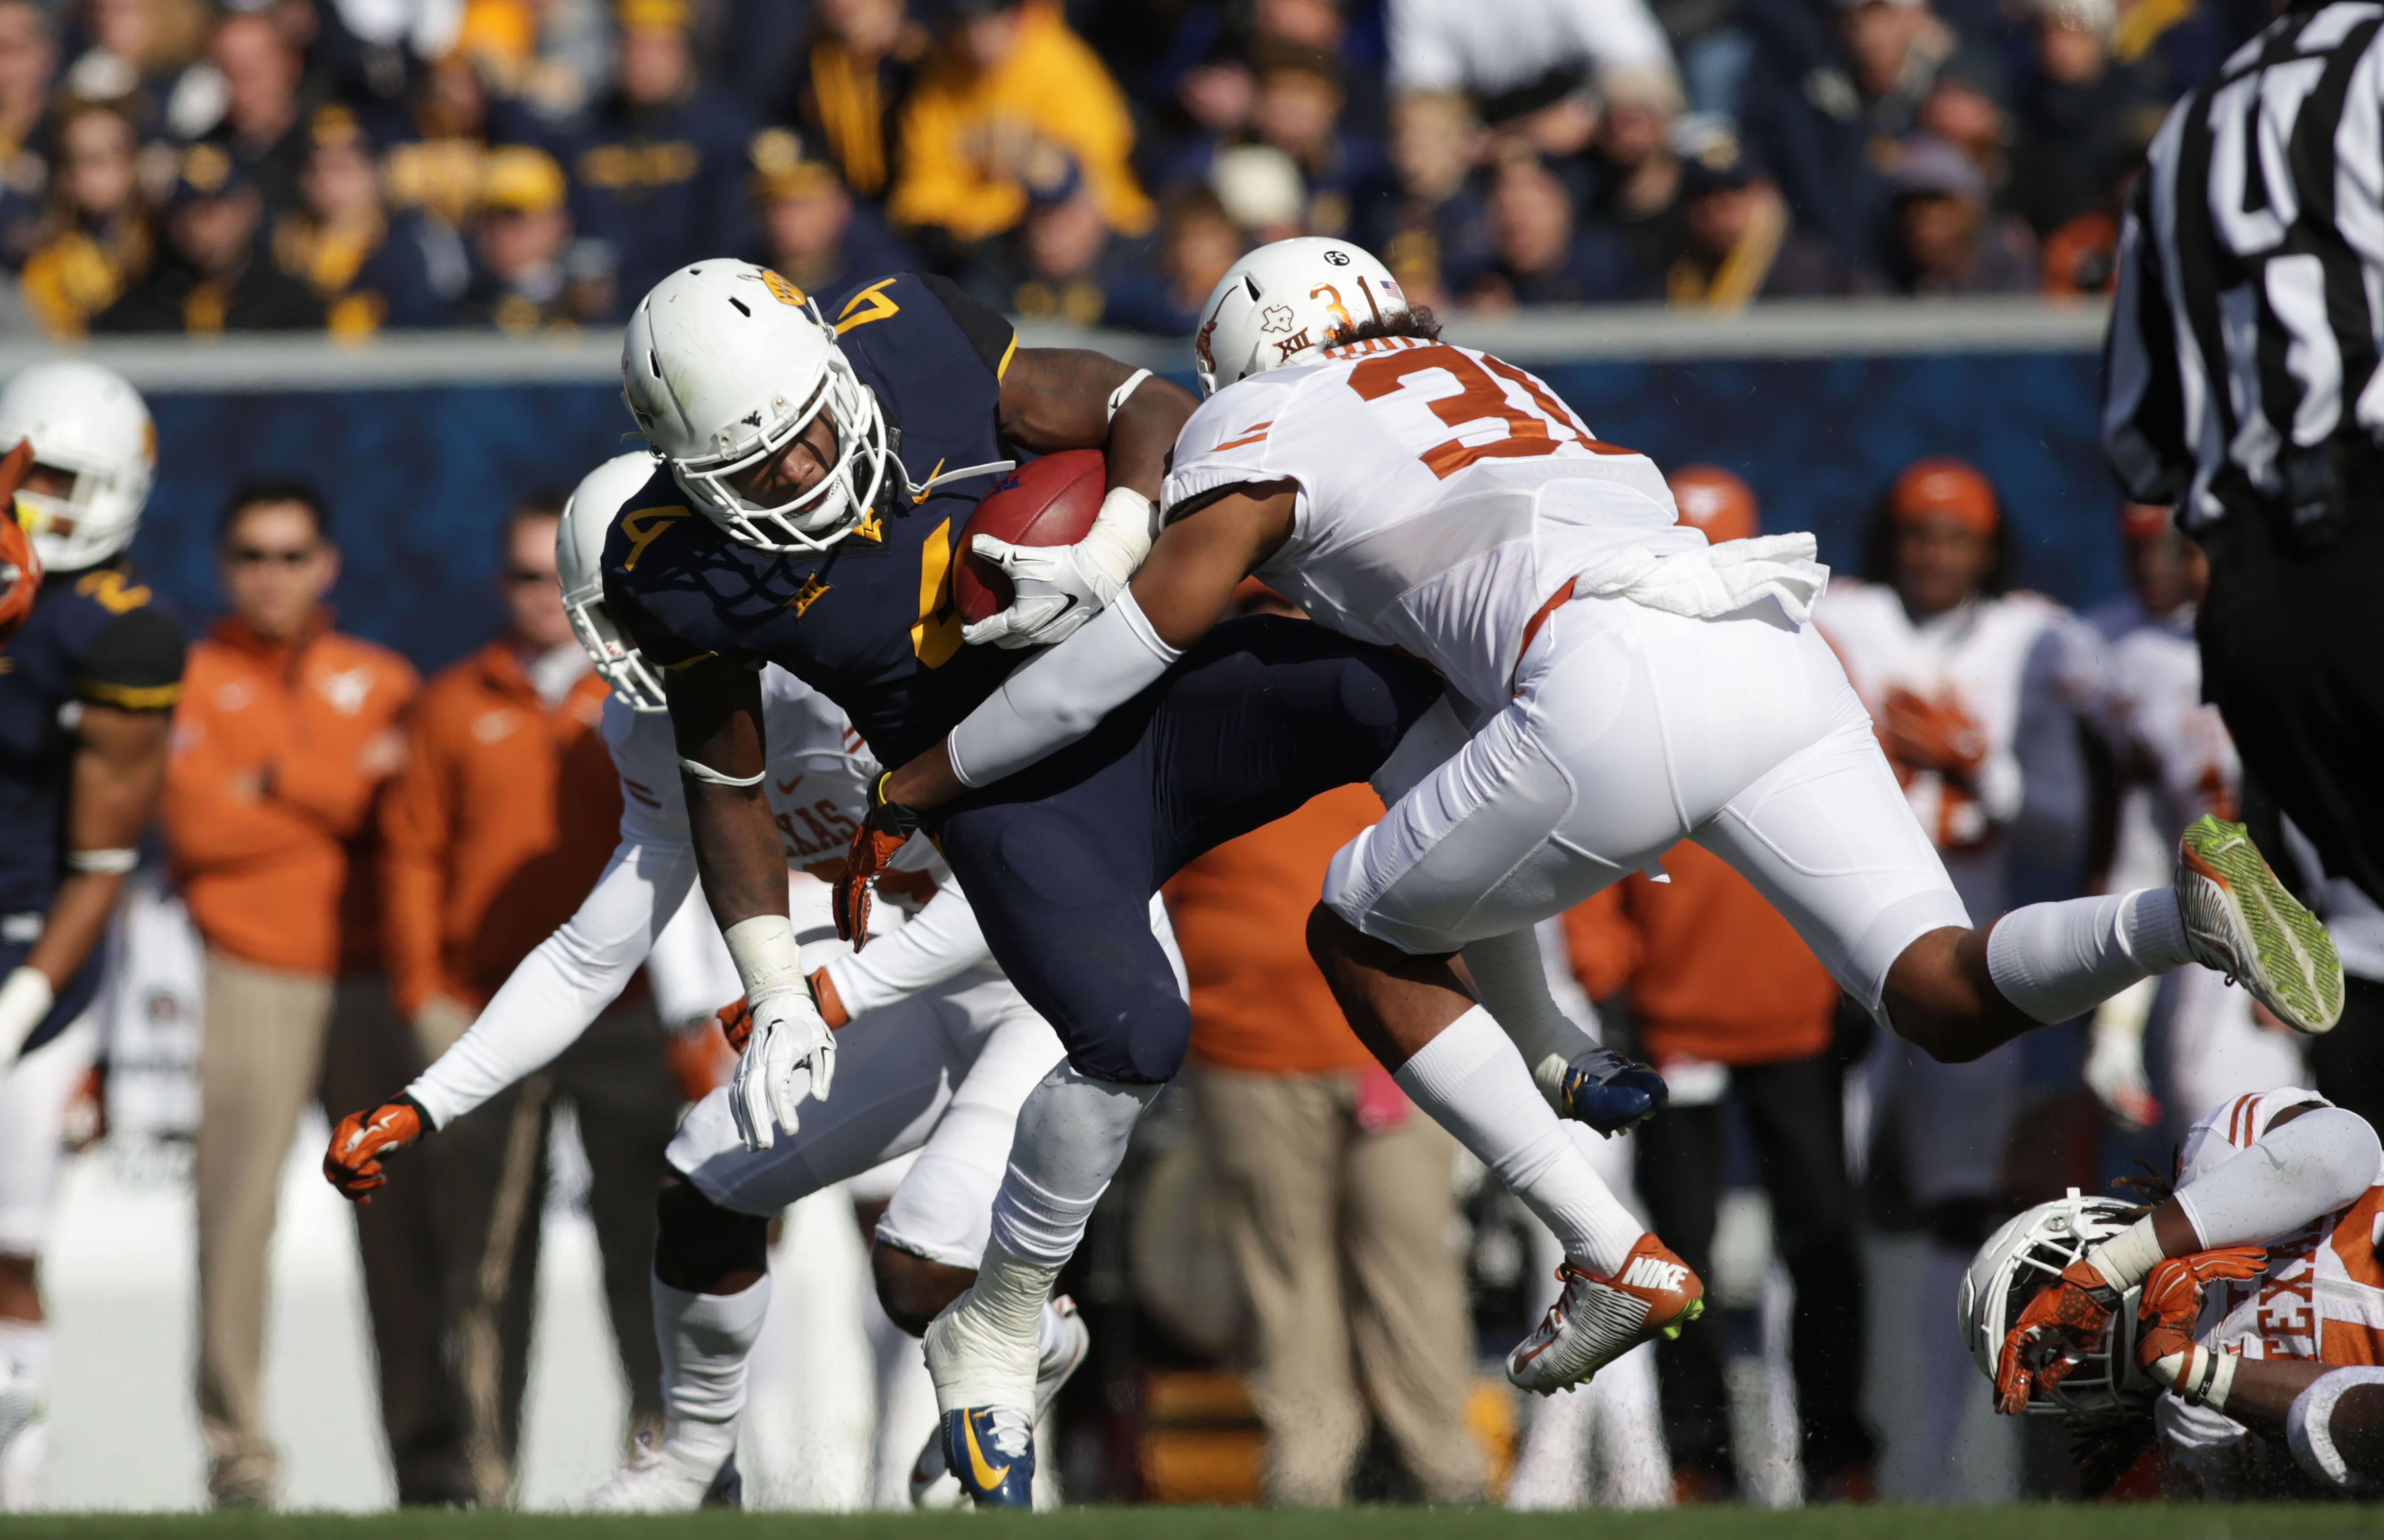 West Virginia running back Wendell Smallwood (4) is tackled by Texas safety Jason Hall (31) during the first half of an NCAA college football game, Saturday, Nov. 14, 2015, in Morgantown, W.Va. (AP Photo/Raymond Thompson)